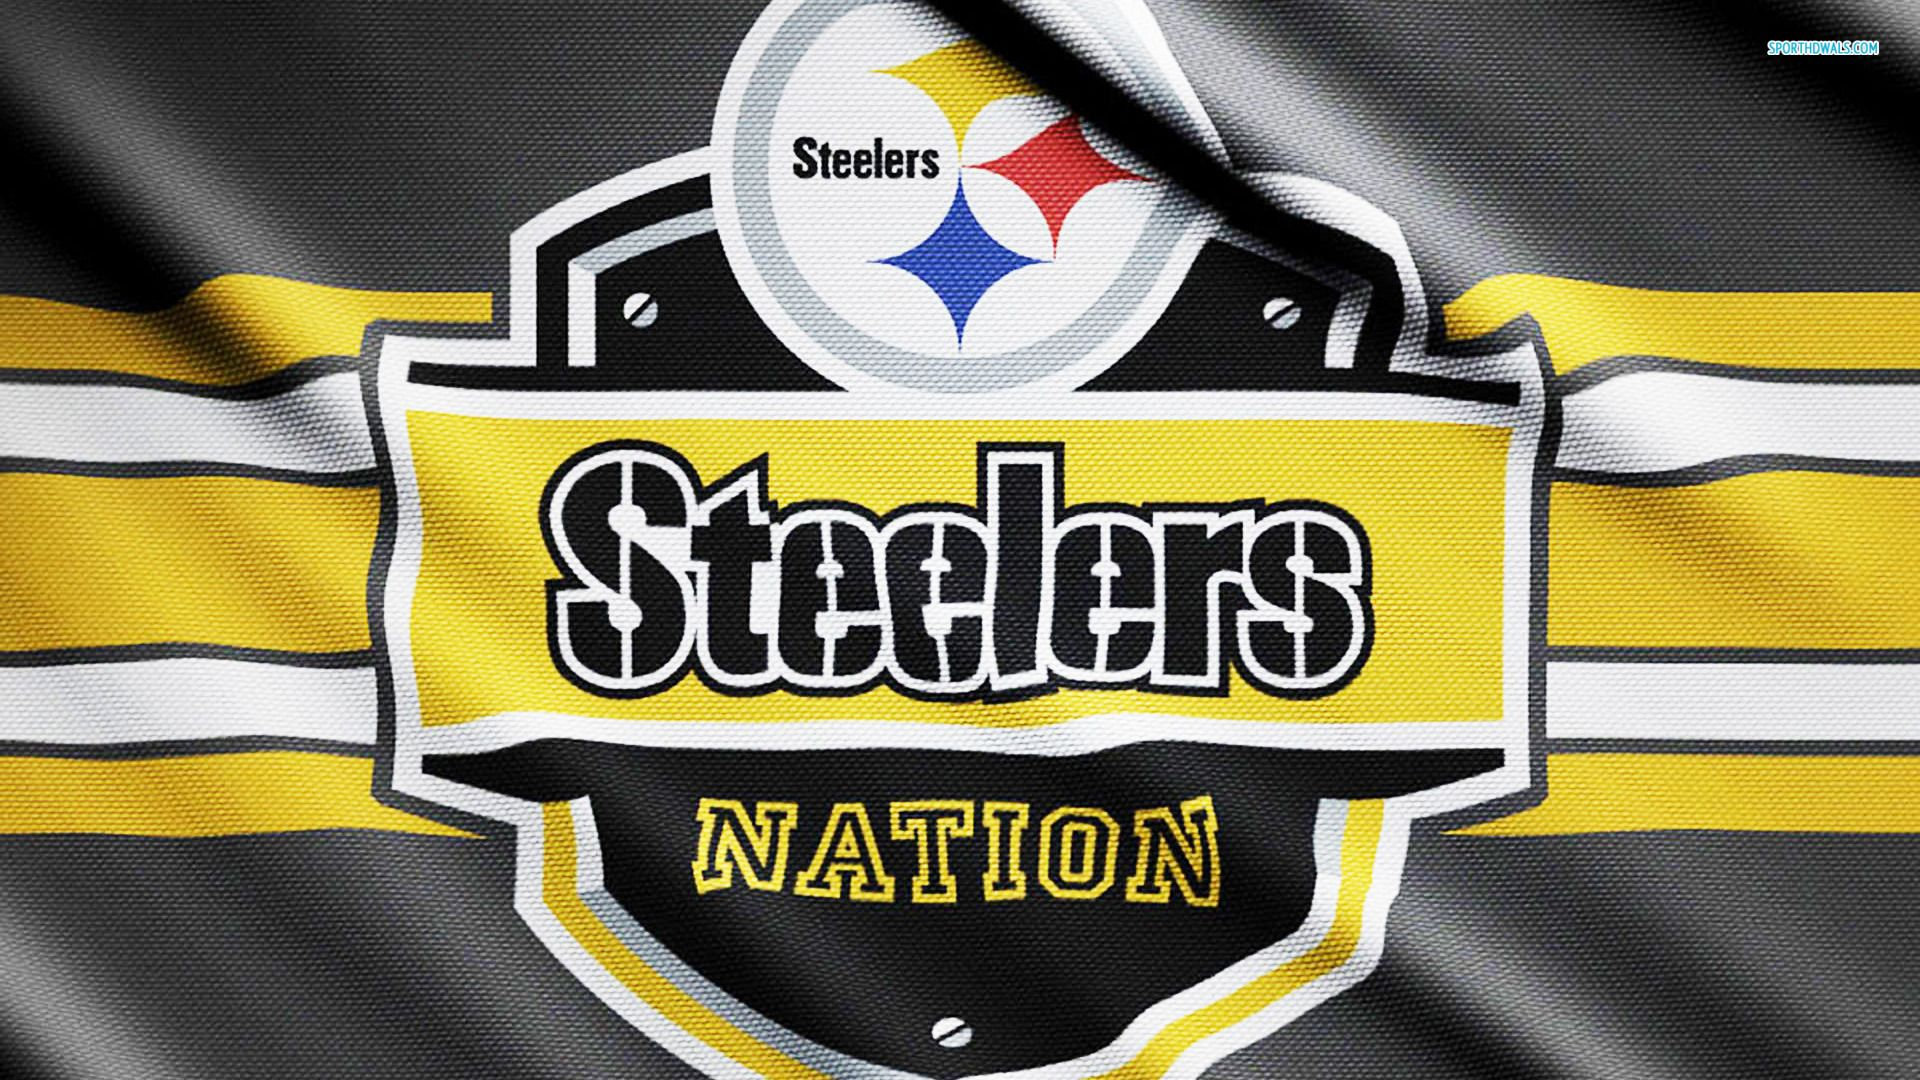 Images pitssburgh steelers pittsburgh steelers wallpaper images pitssburgh steelers pittsburgh steelers wallpaper 1920x1080 voltagebd Images